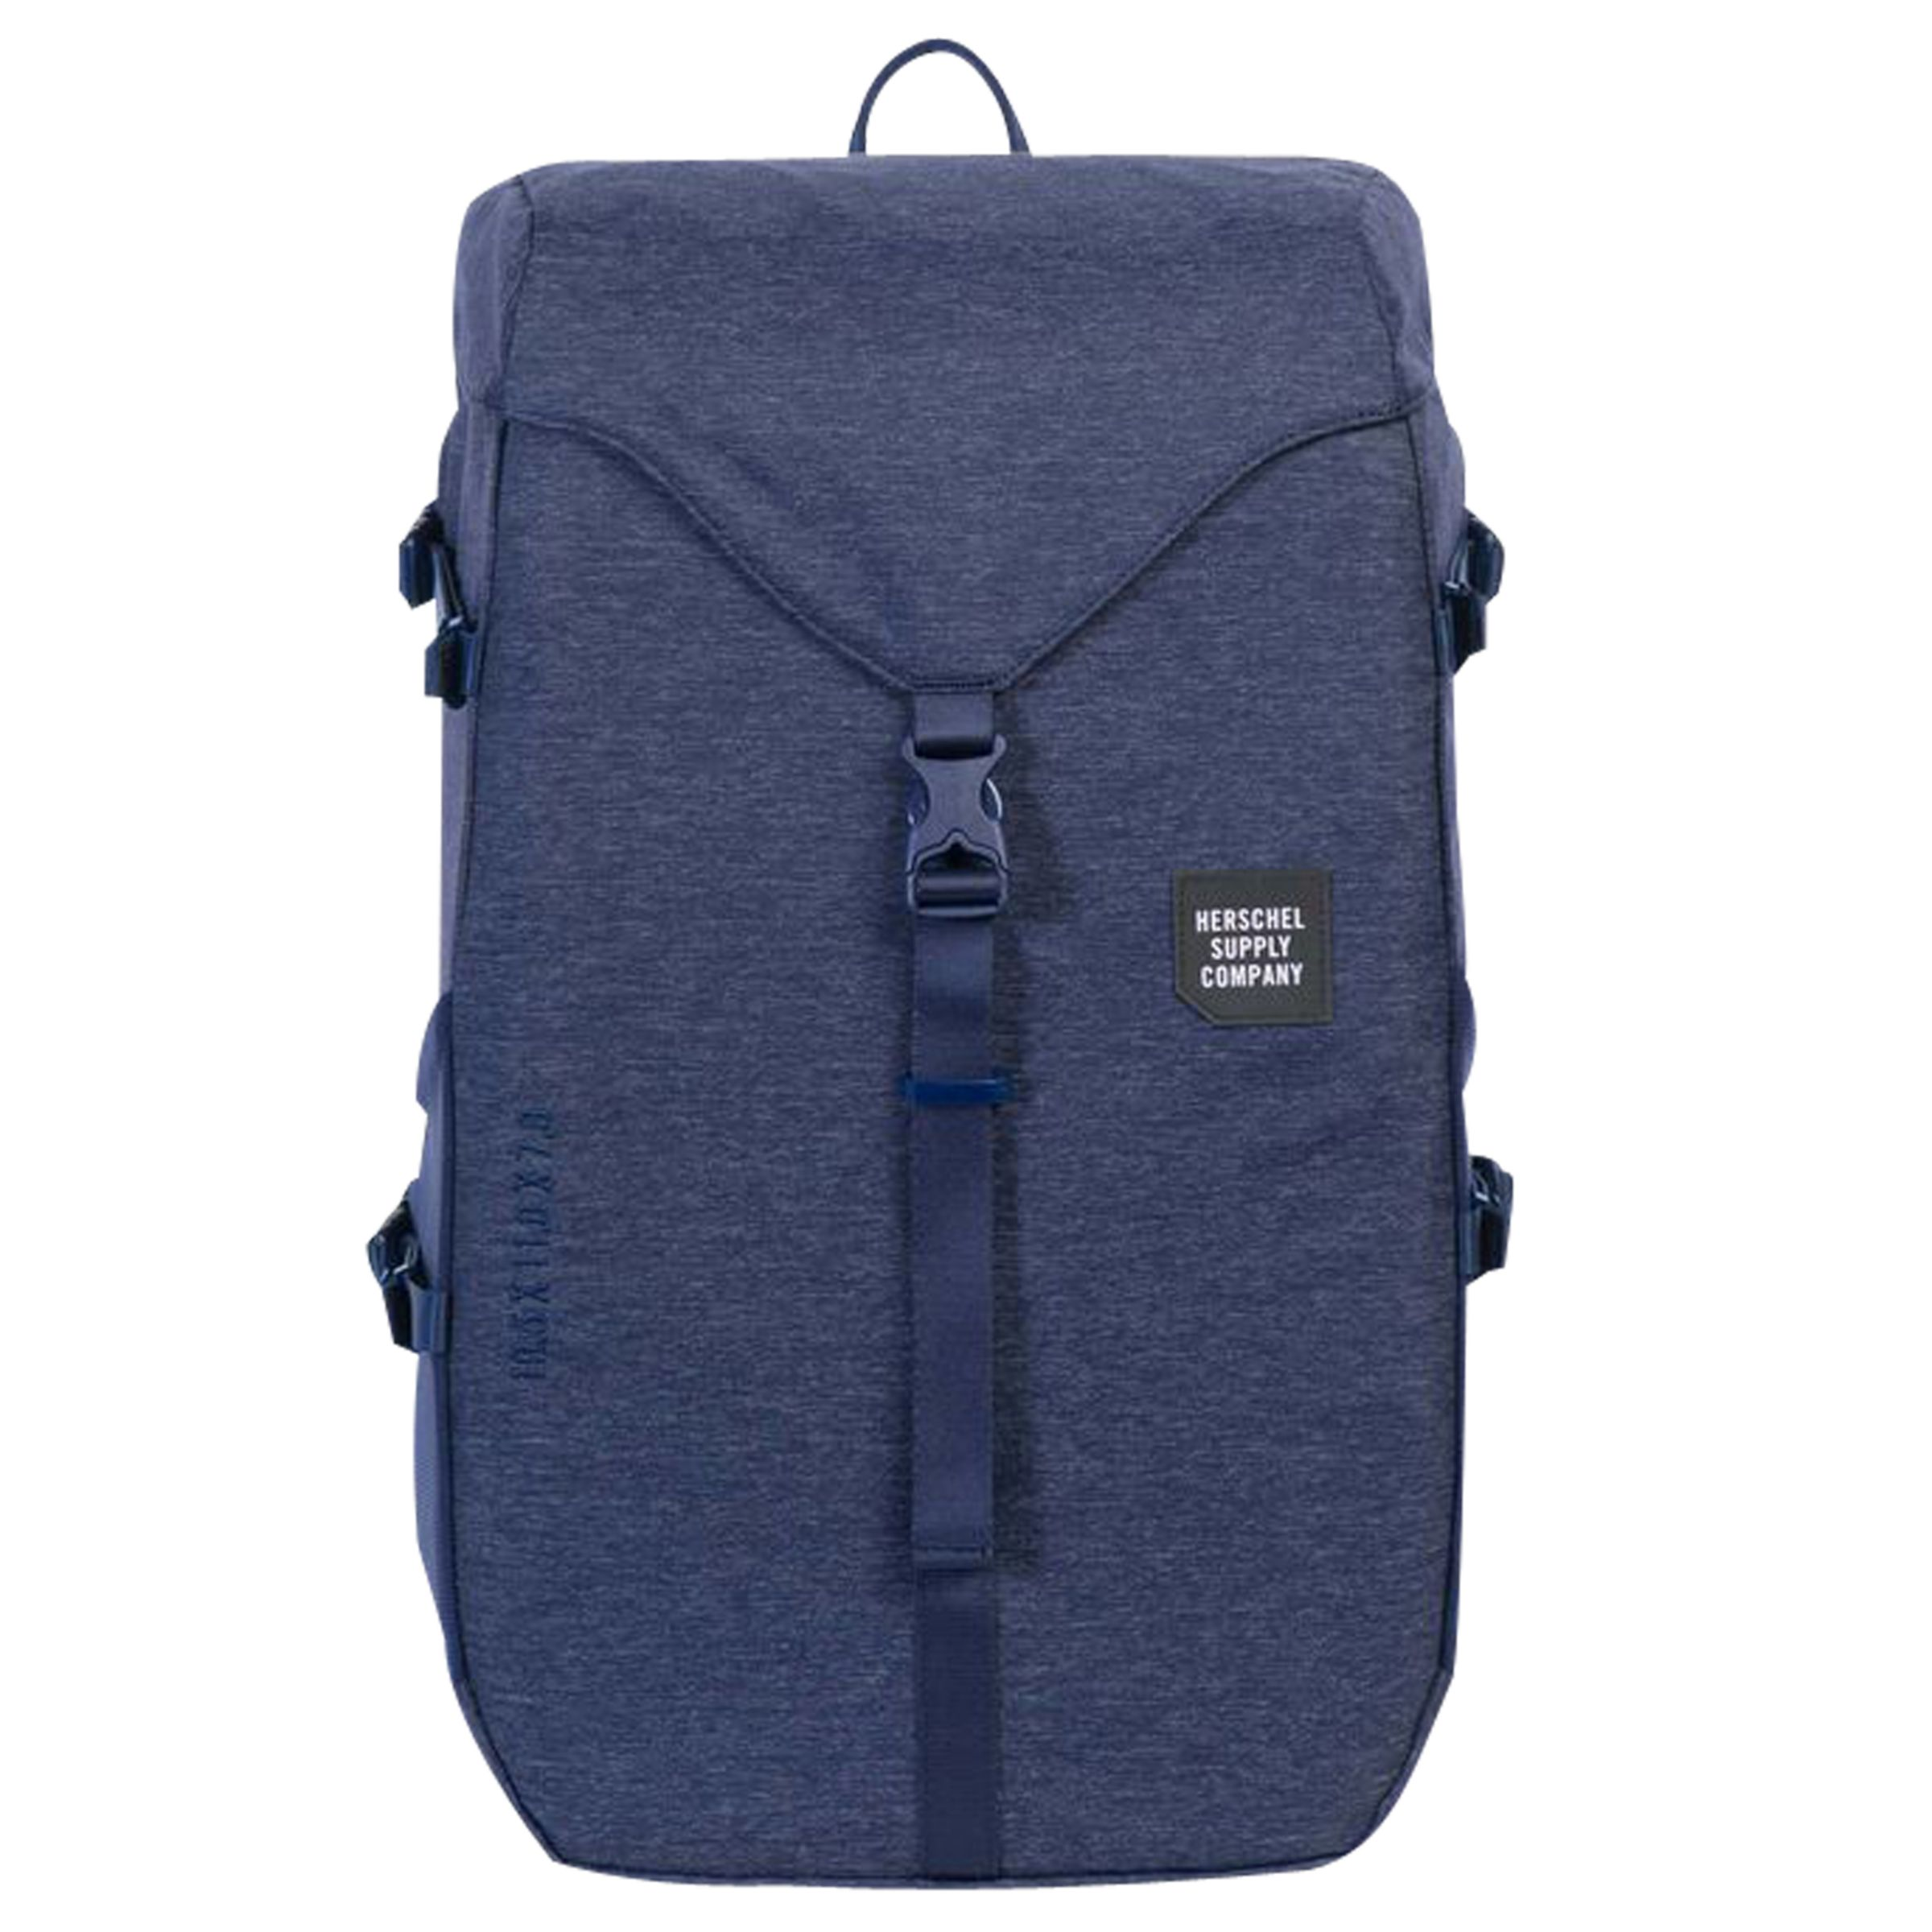 Herschel Supply Co. Herschel Suppy Co. Barlow Large Backpack, Denim